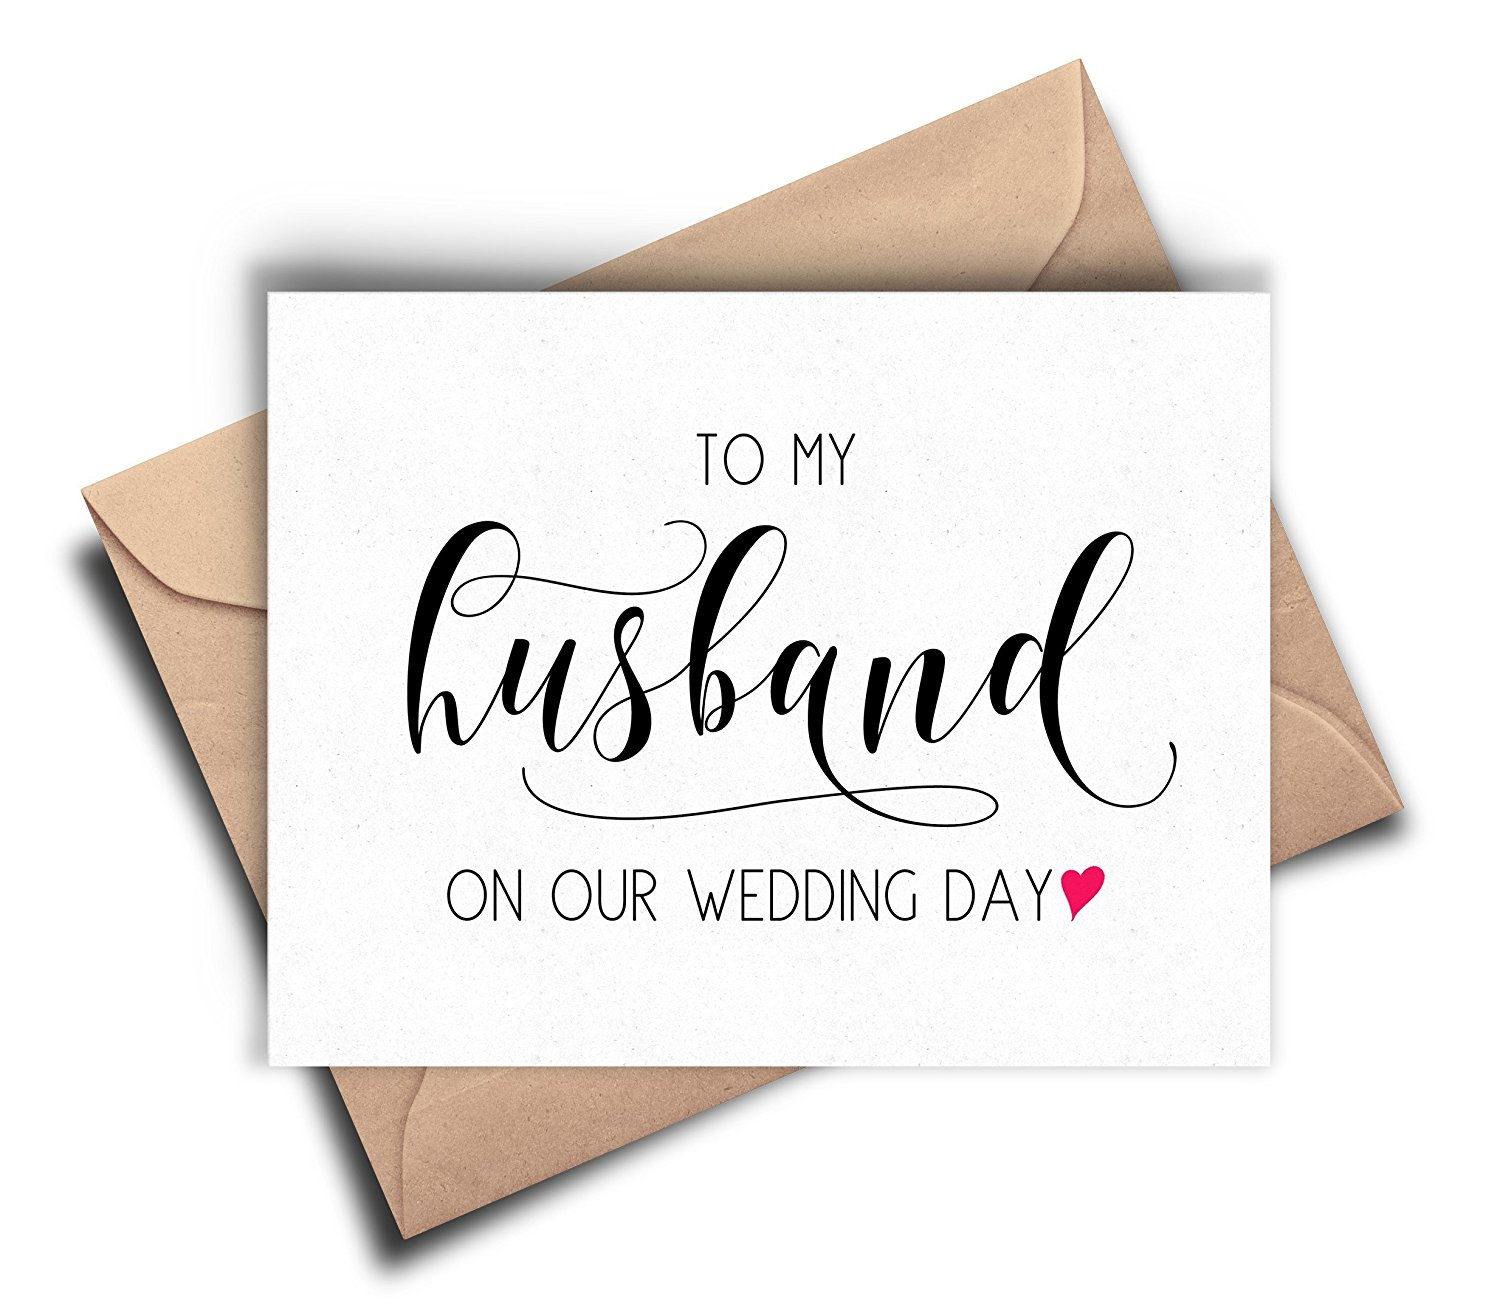 Gift For My Husband On Our Wedding Day: Buy Groom Card From Bride, To My Husband On Our Wedding